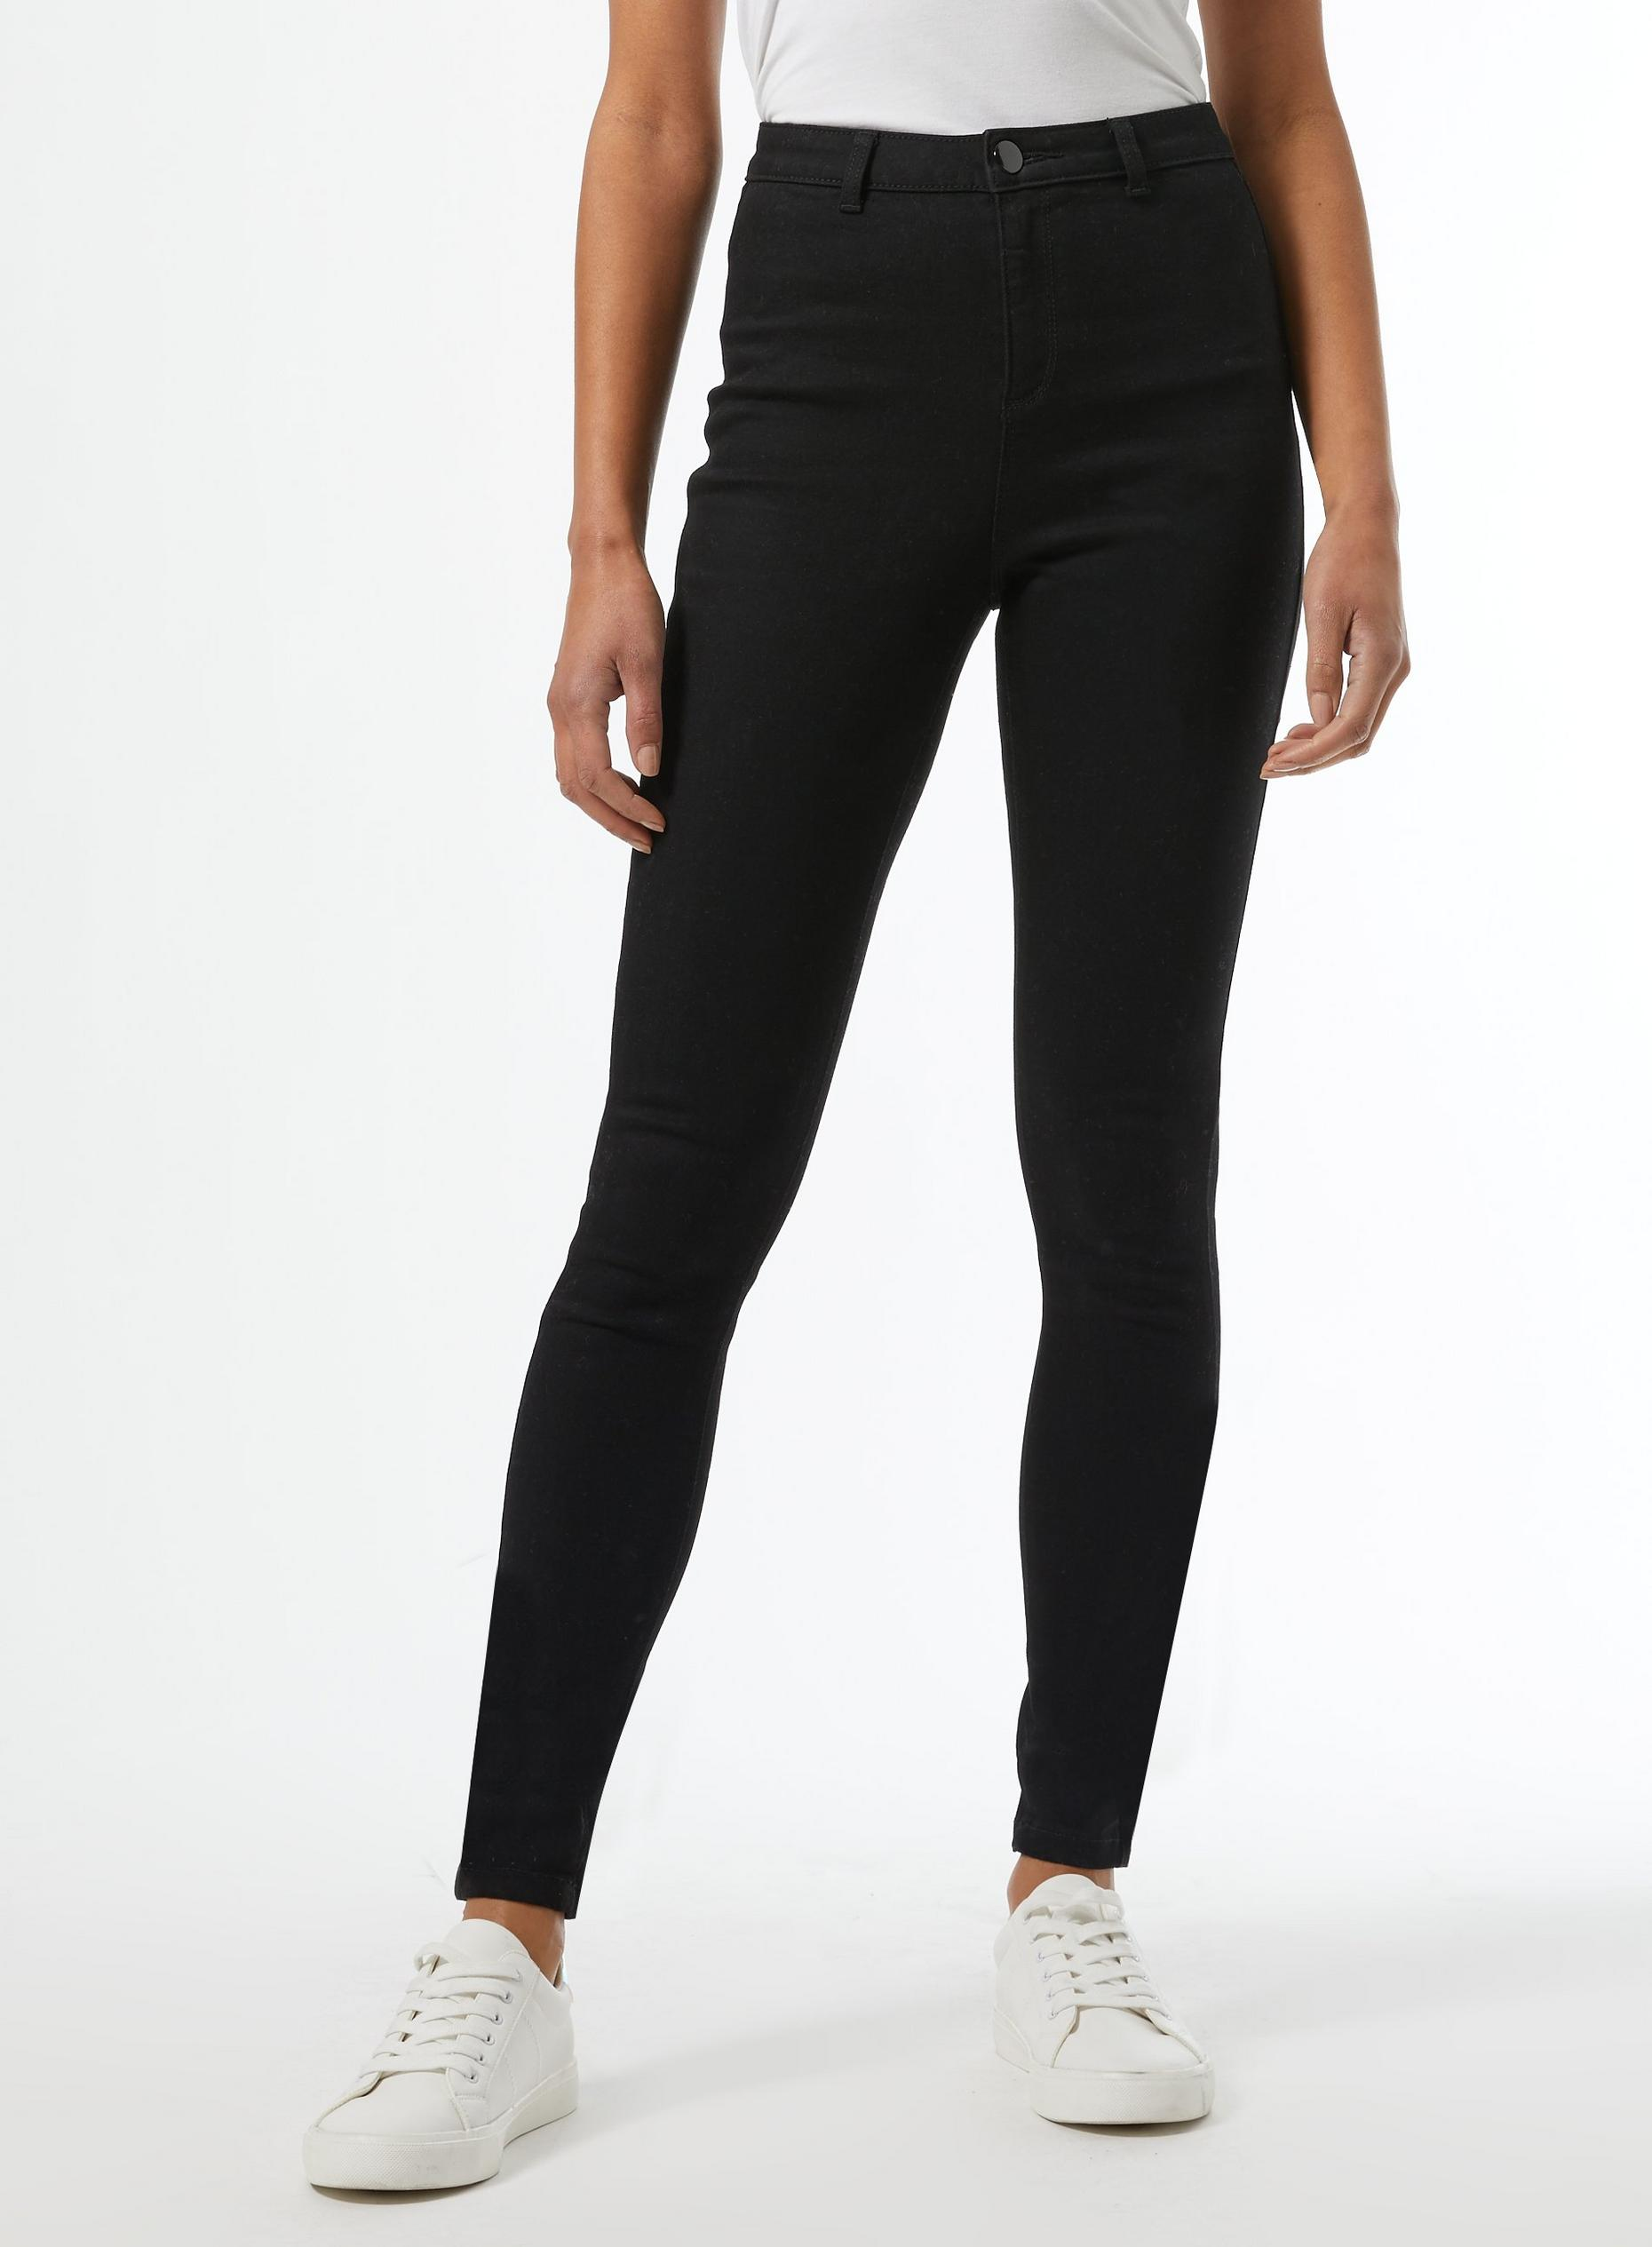 Black Long Lyla High Waisted Skinny Jean